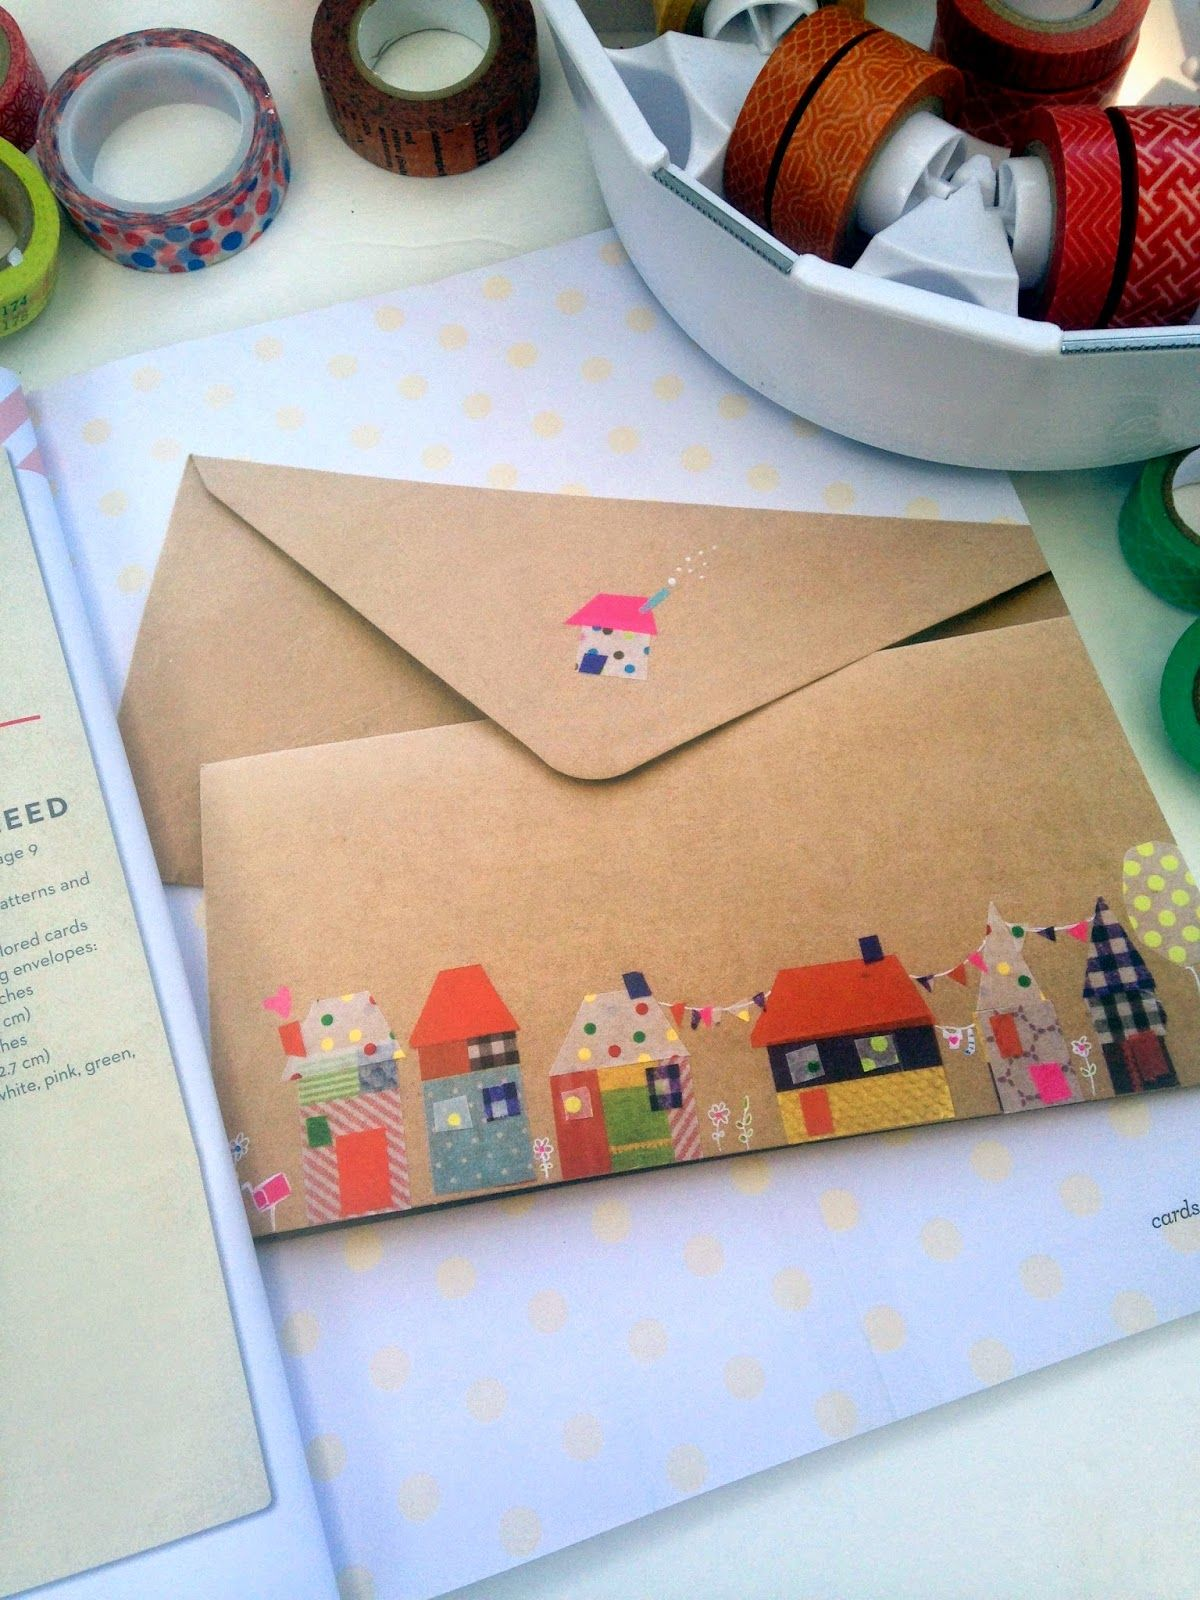 cute envelope decoration idea would also make a neat homemade card